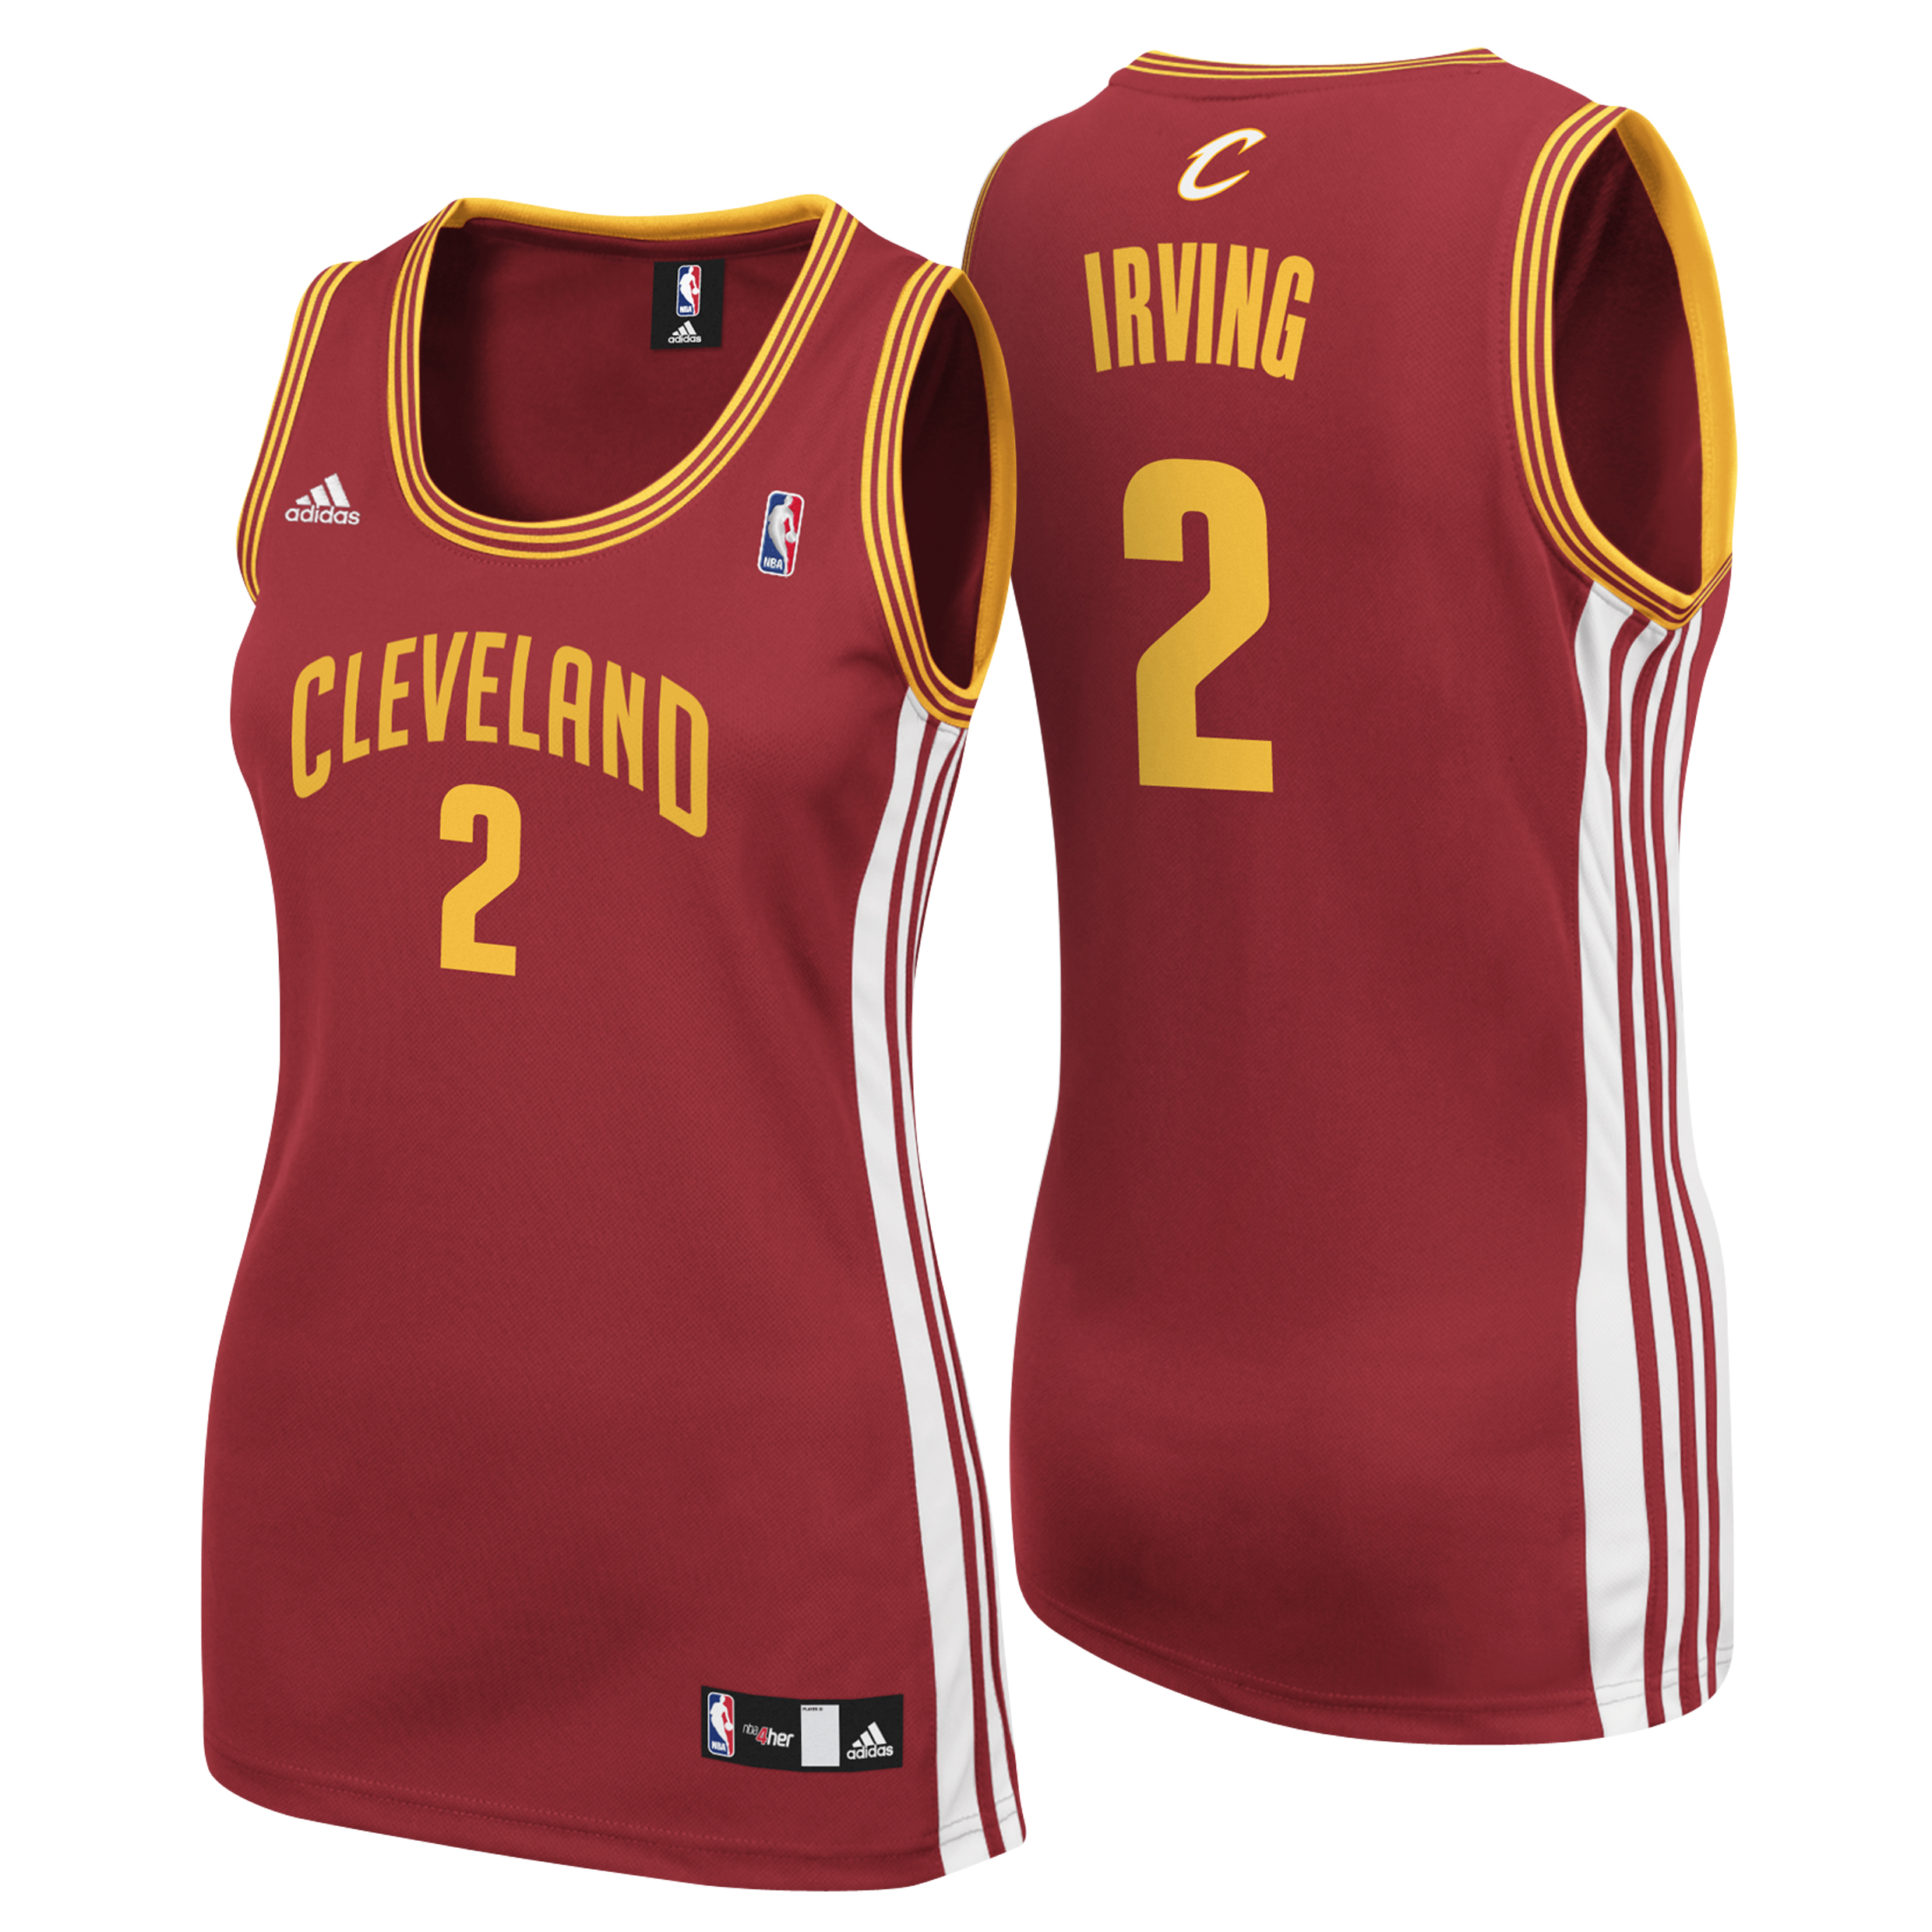 Cleveland Cavaliers Road Replica Jersey - Kyrie Irving - Womens